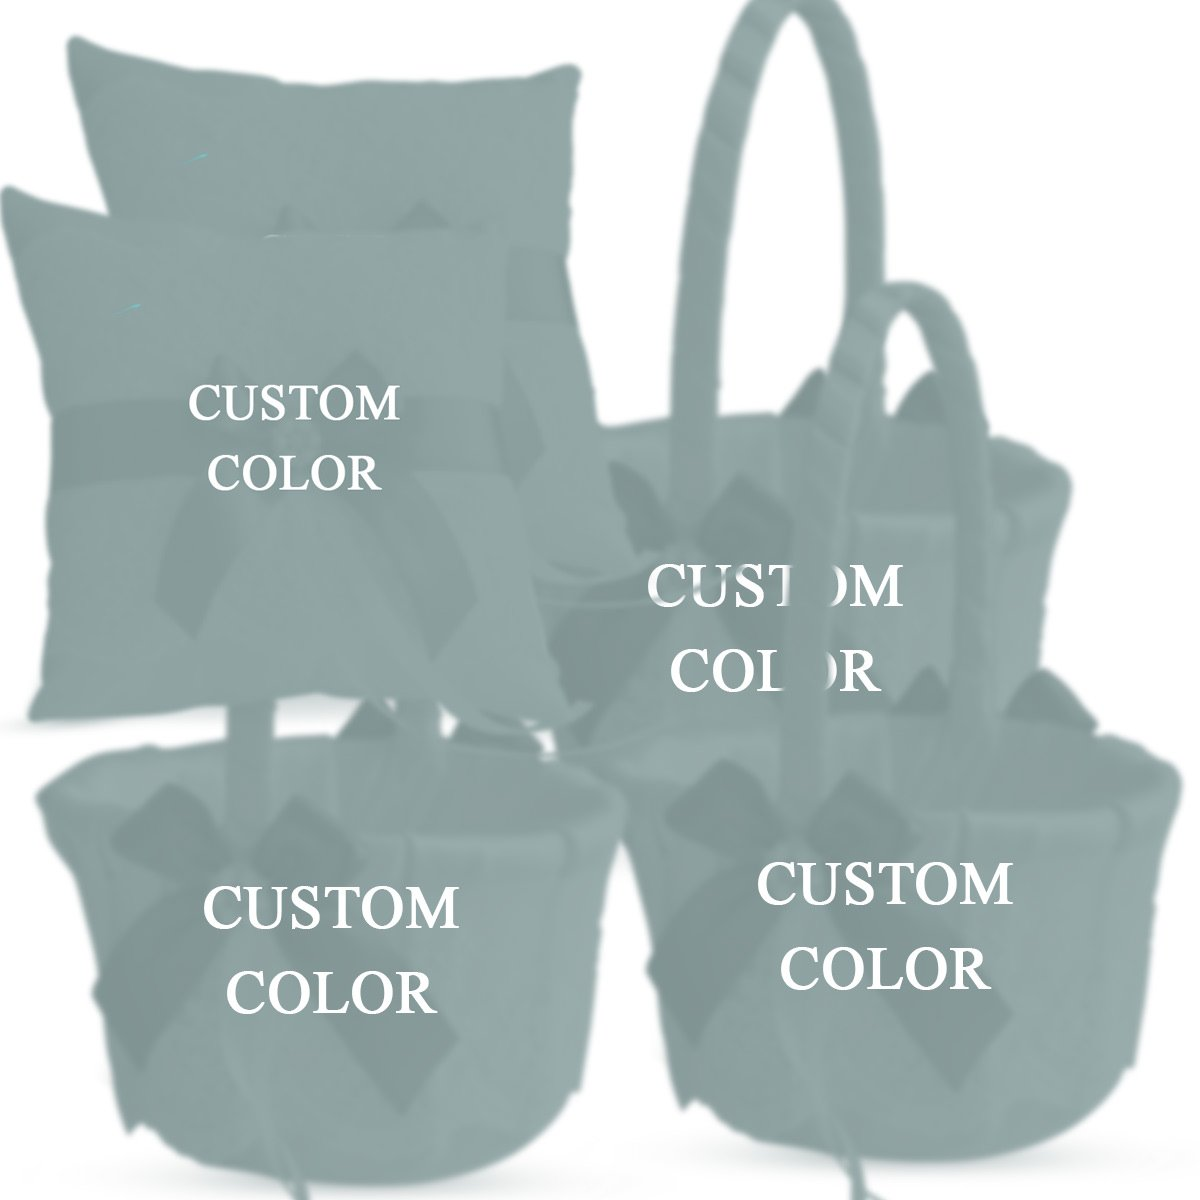 Roman Store Custom Color Wedding Ring Bearer Pillow and Flower Girl Basket Set – Satin &Ribbons – Pairs Well with Most Dresses & Themes – Splendour Every Wedding Deserves